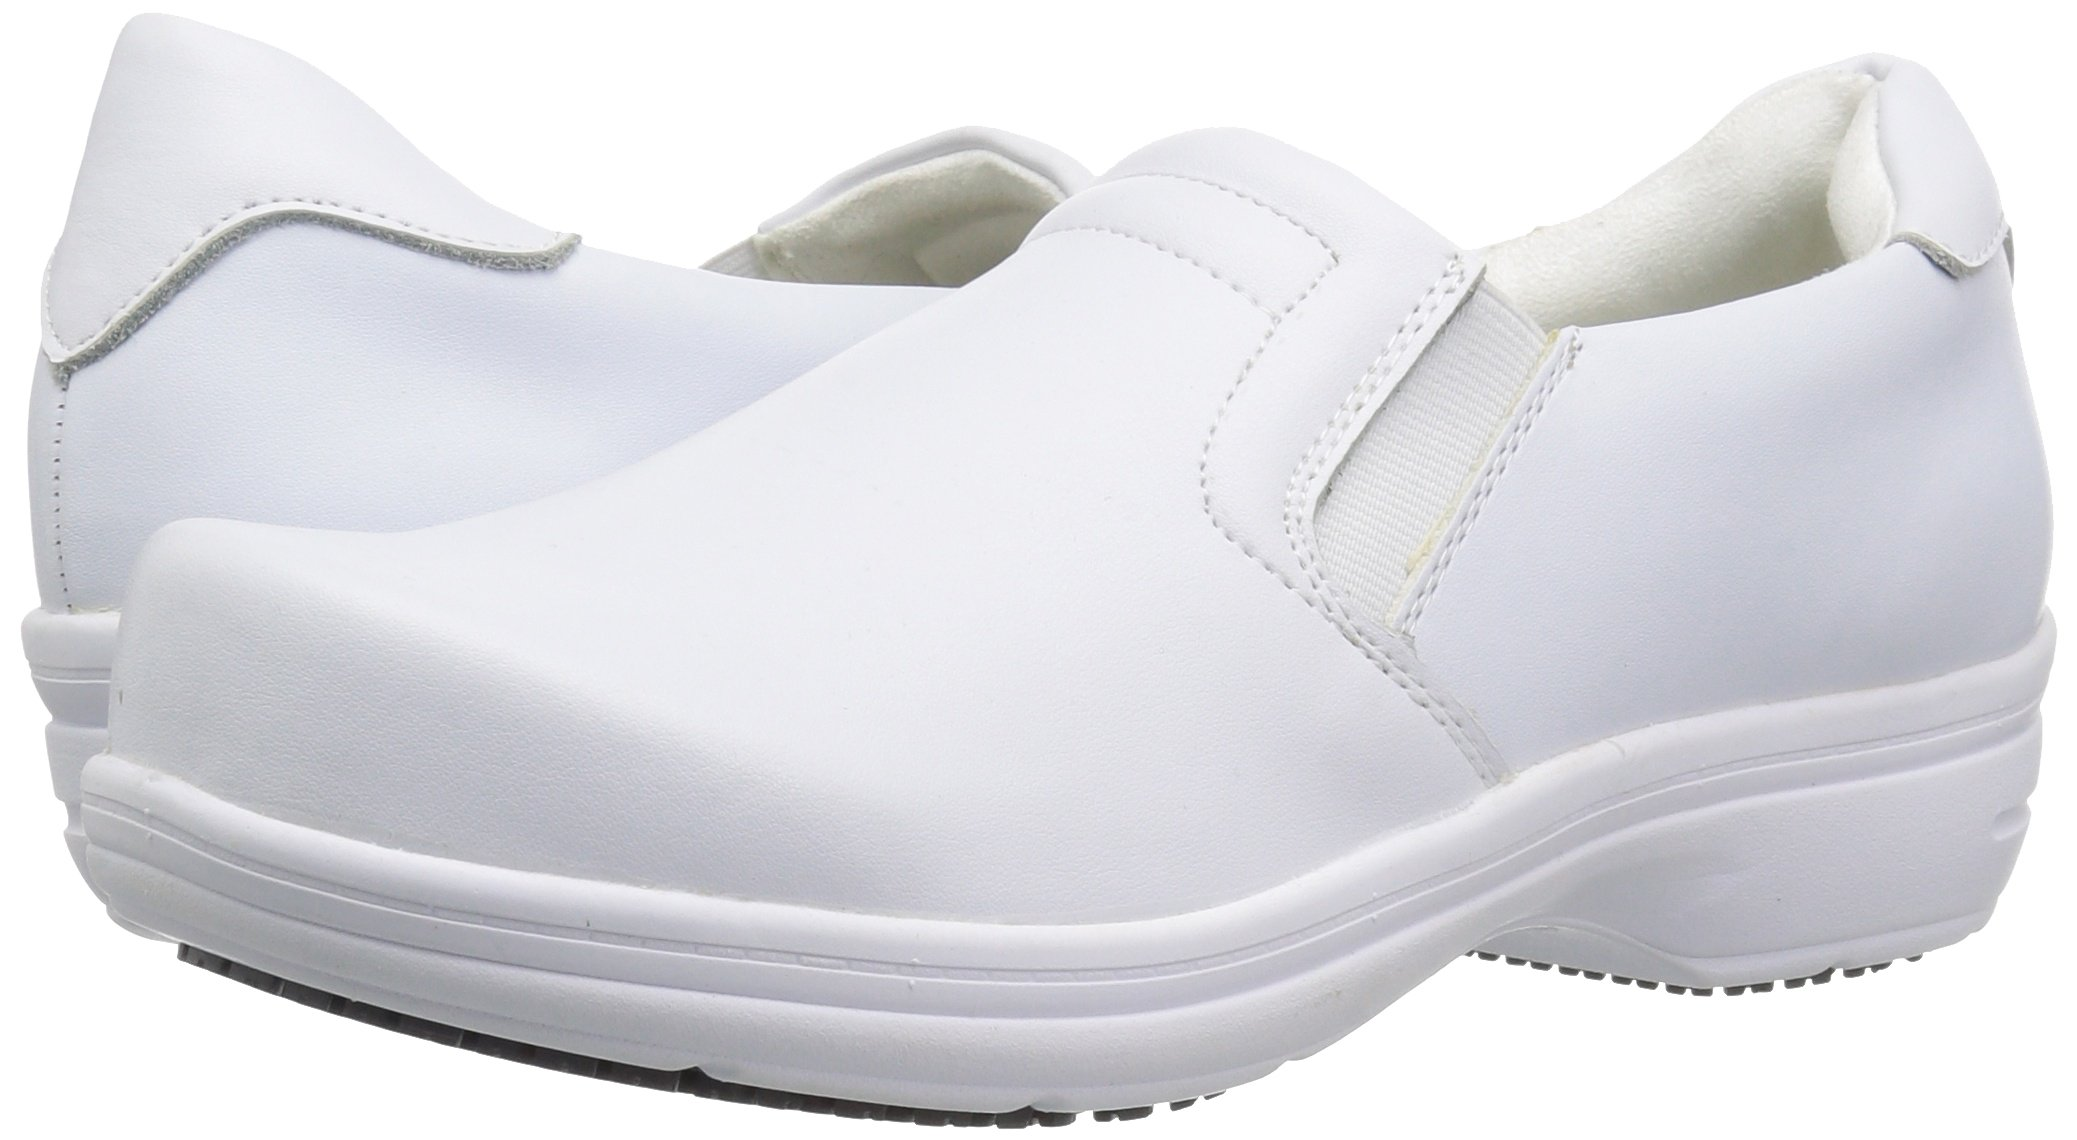 Easy Works Women's Bind Health Care Professional Shoe, White, 8.5 M US by Easy Works (Image #6)